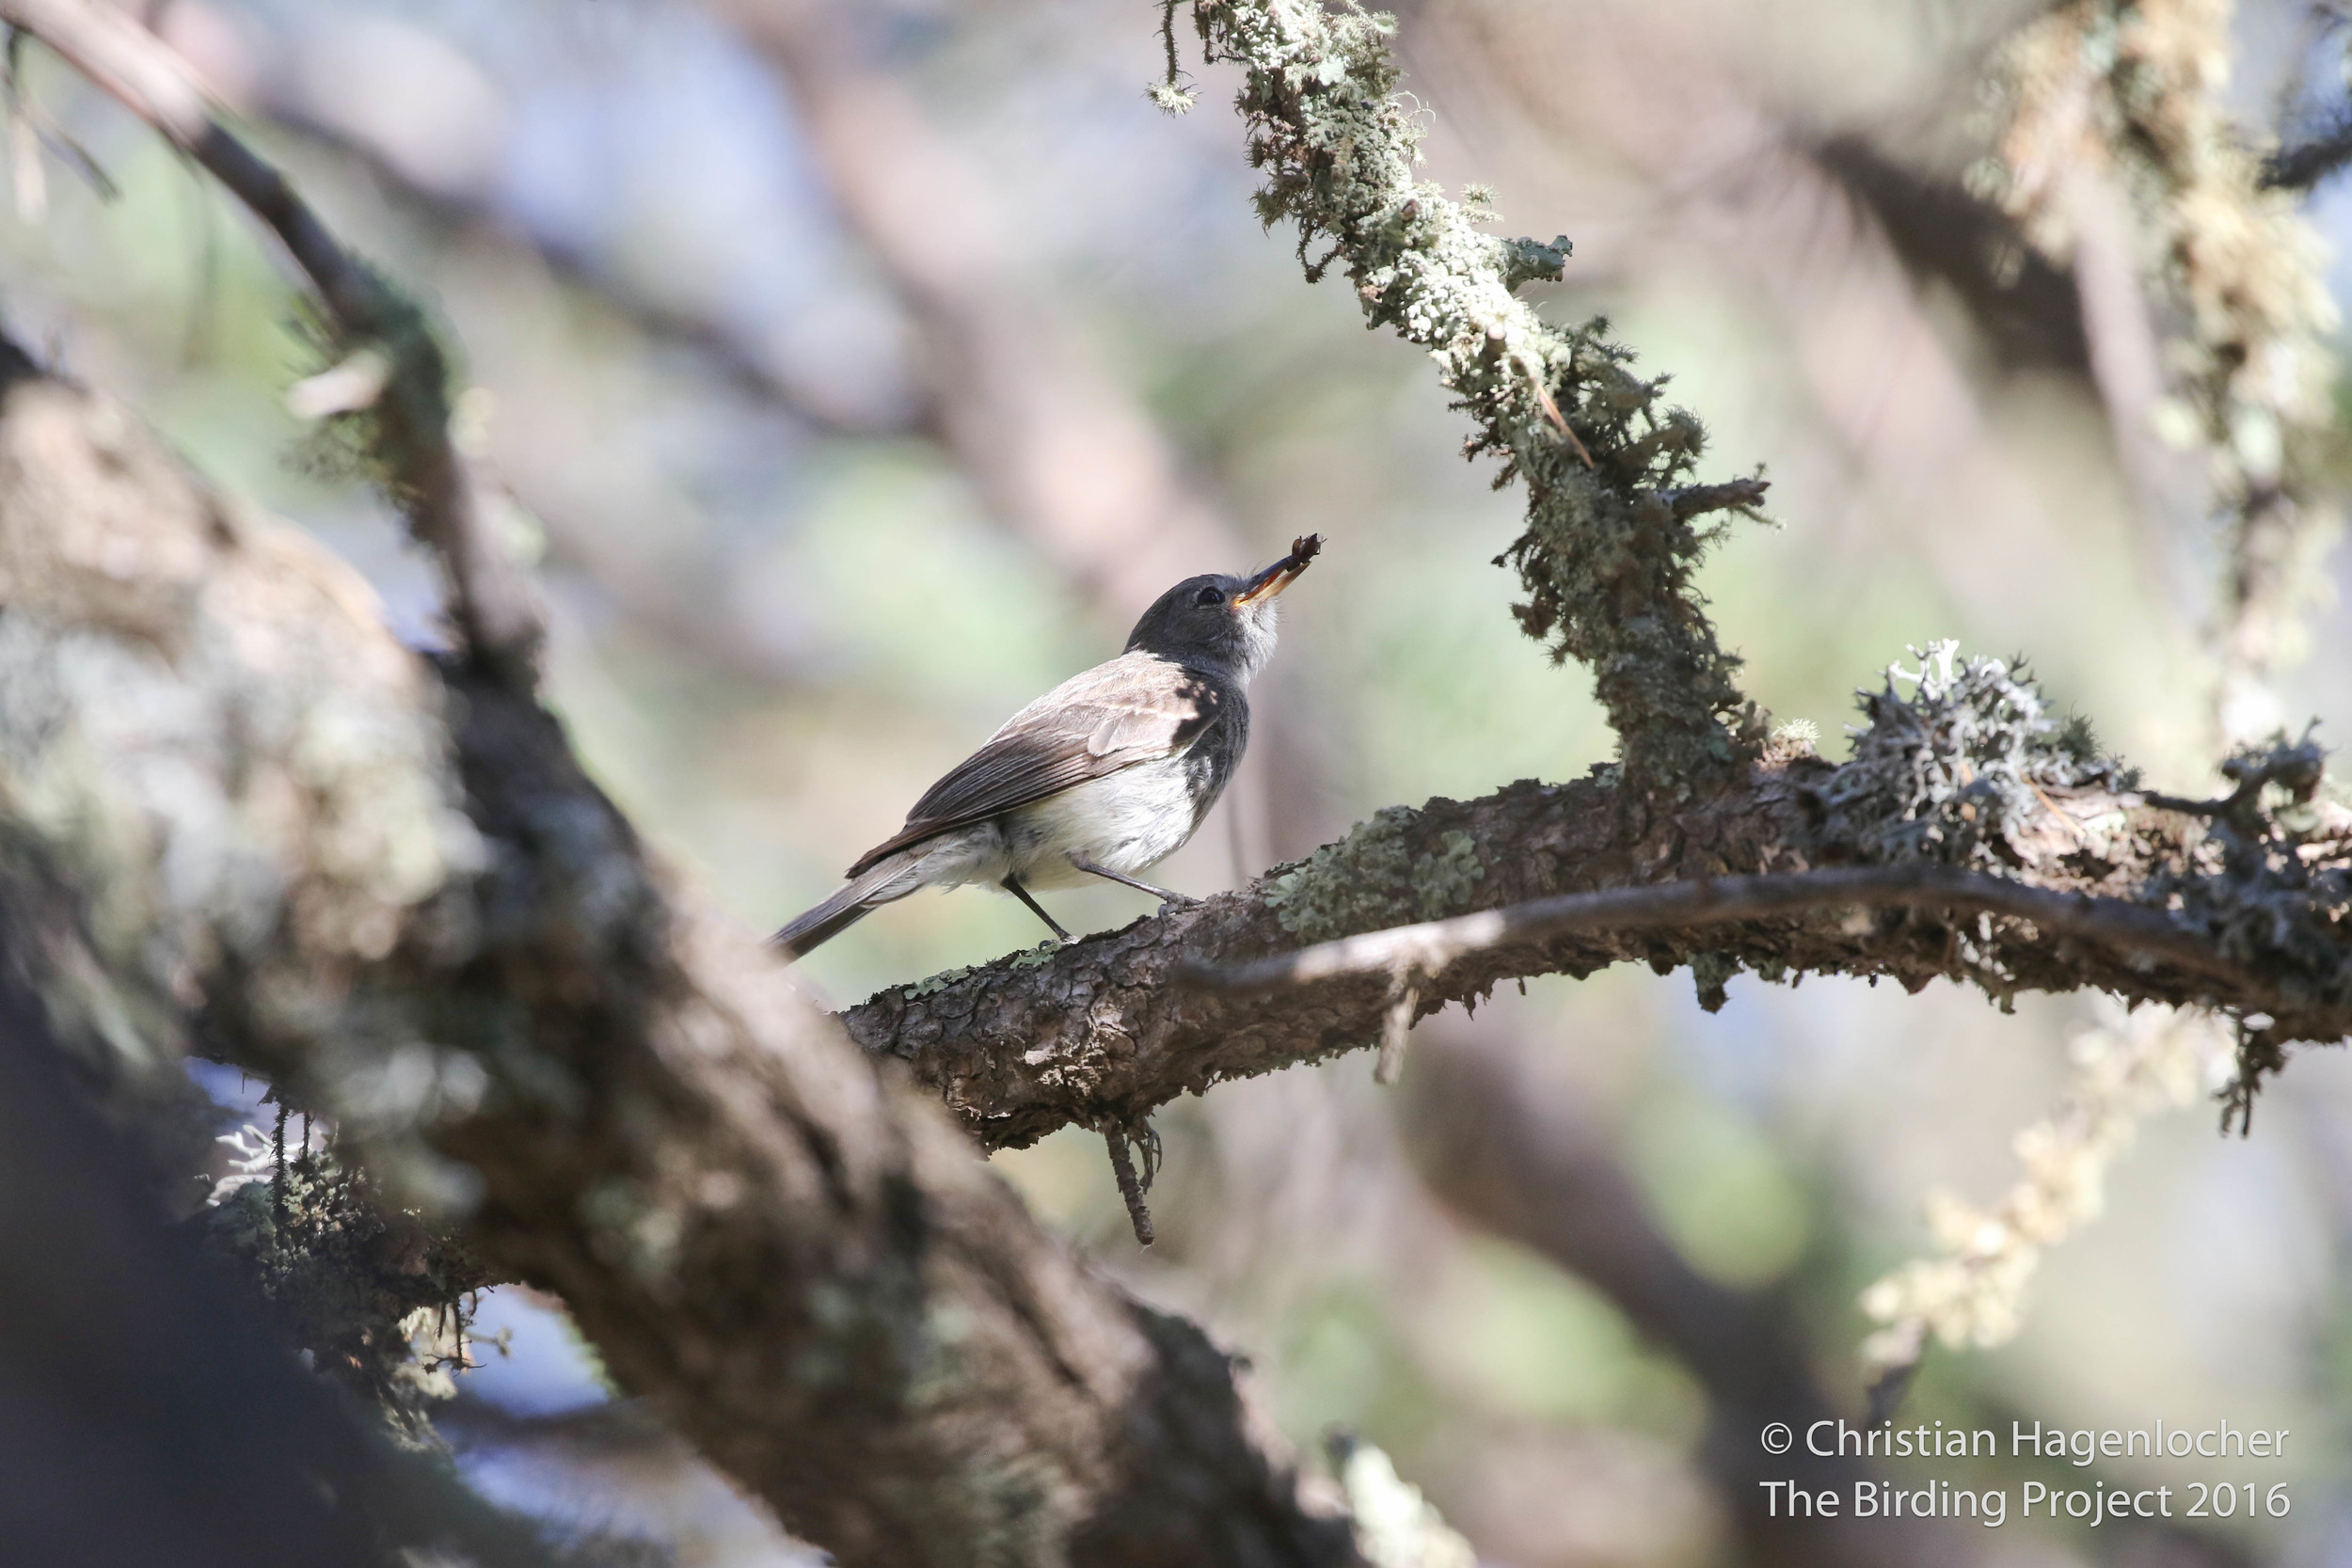 Before arriving at the wedding venue, I snuck out and nabbed #689, Gray Flycatcher